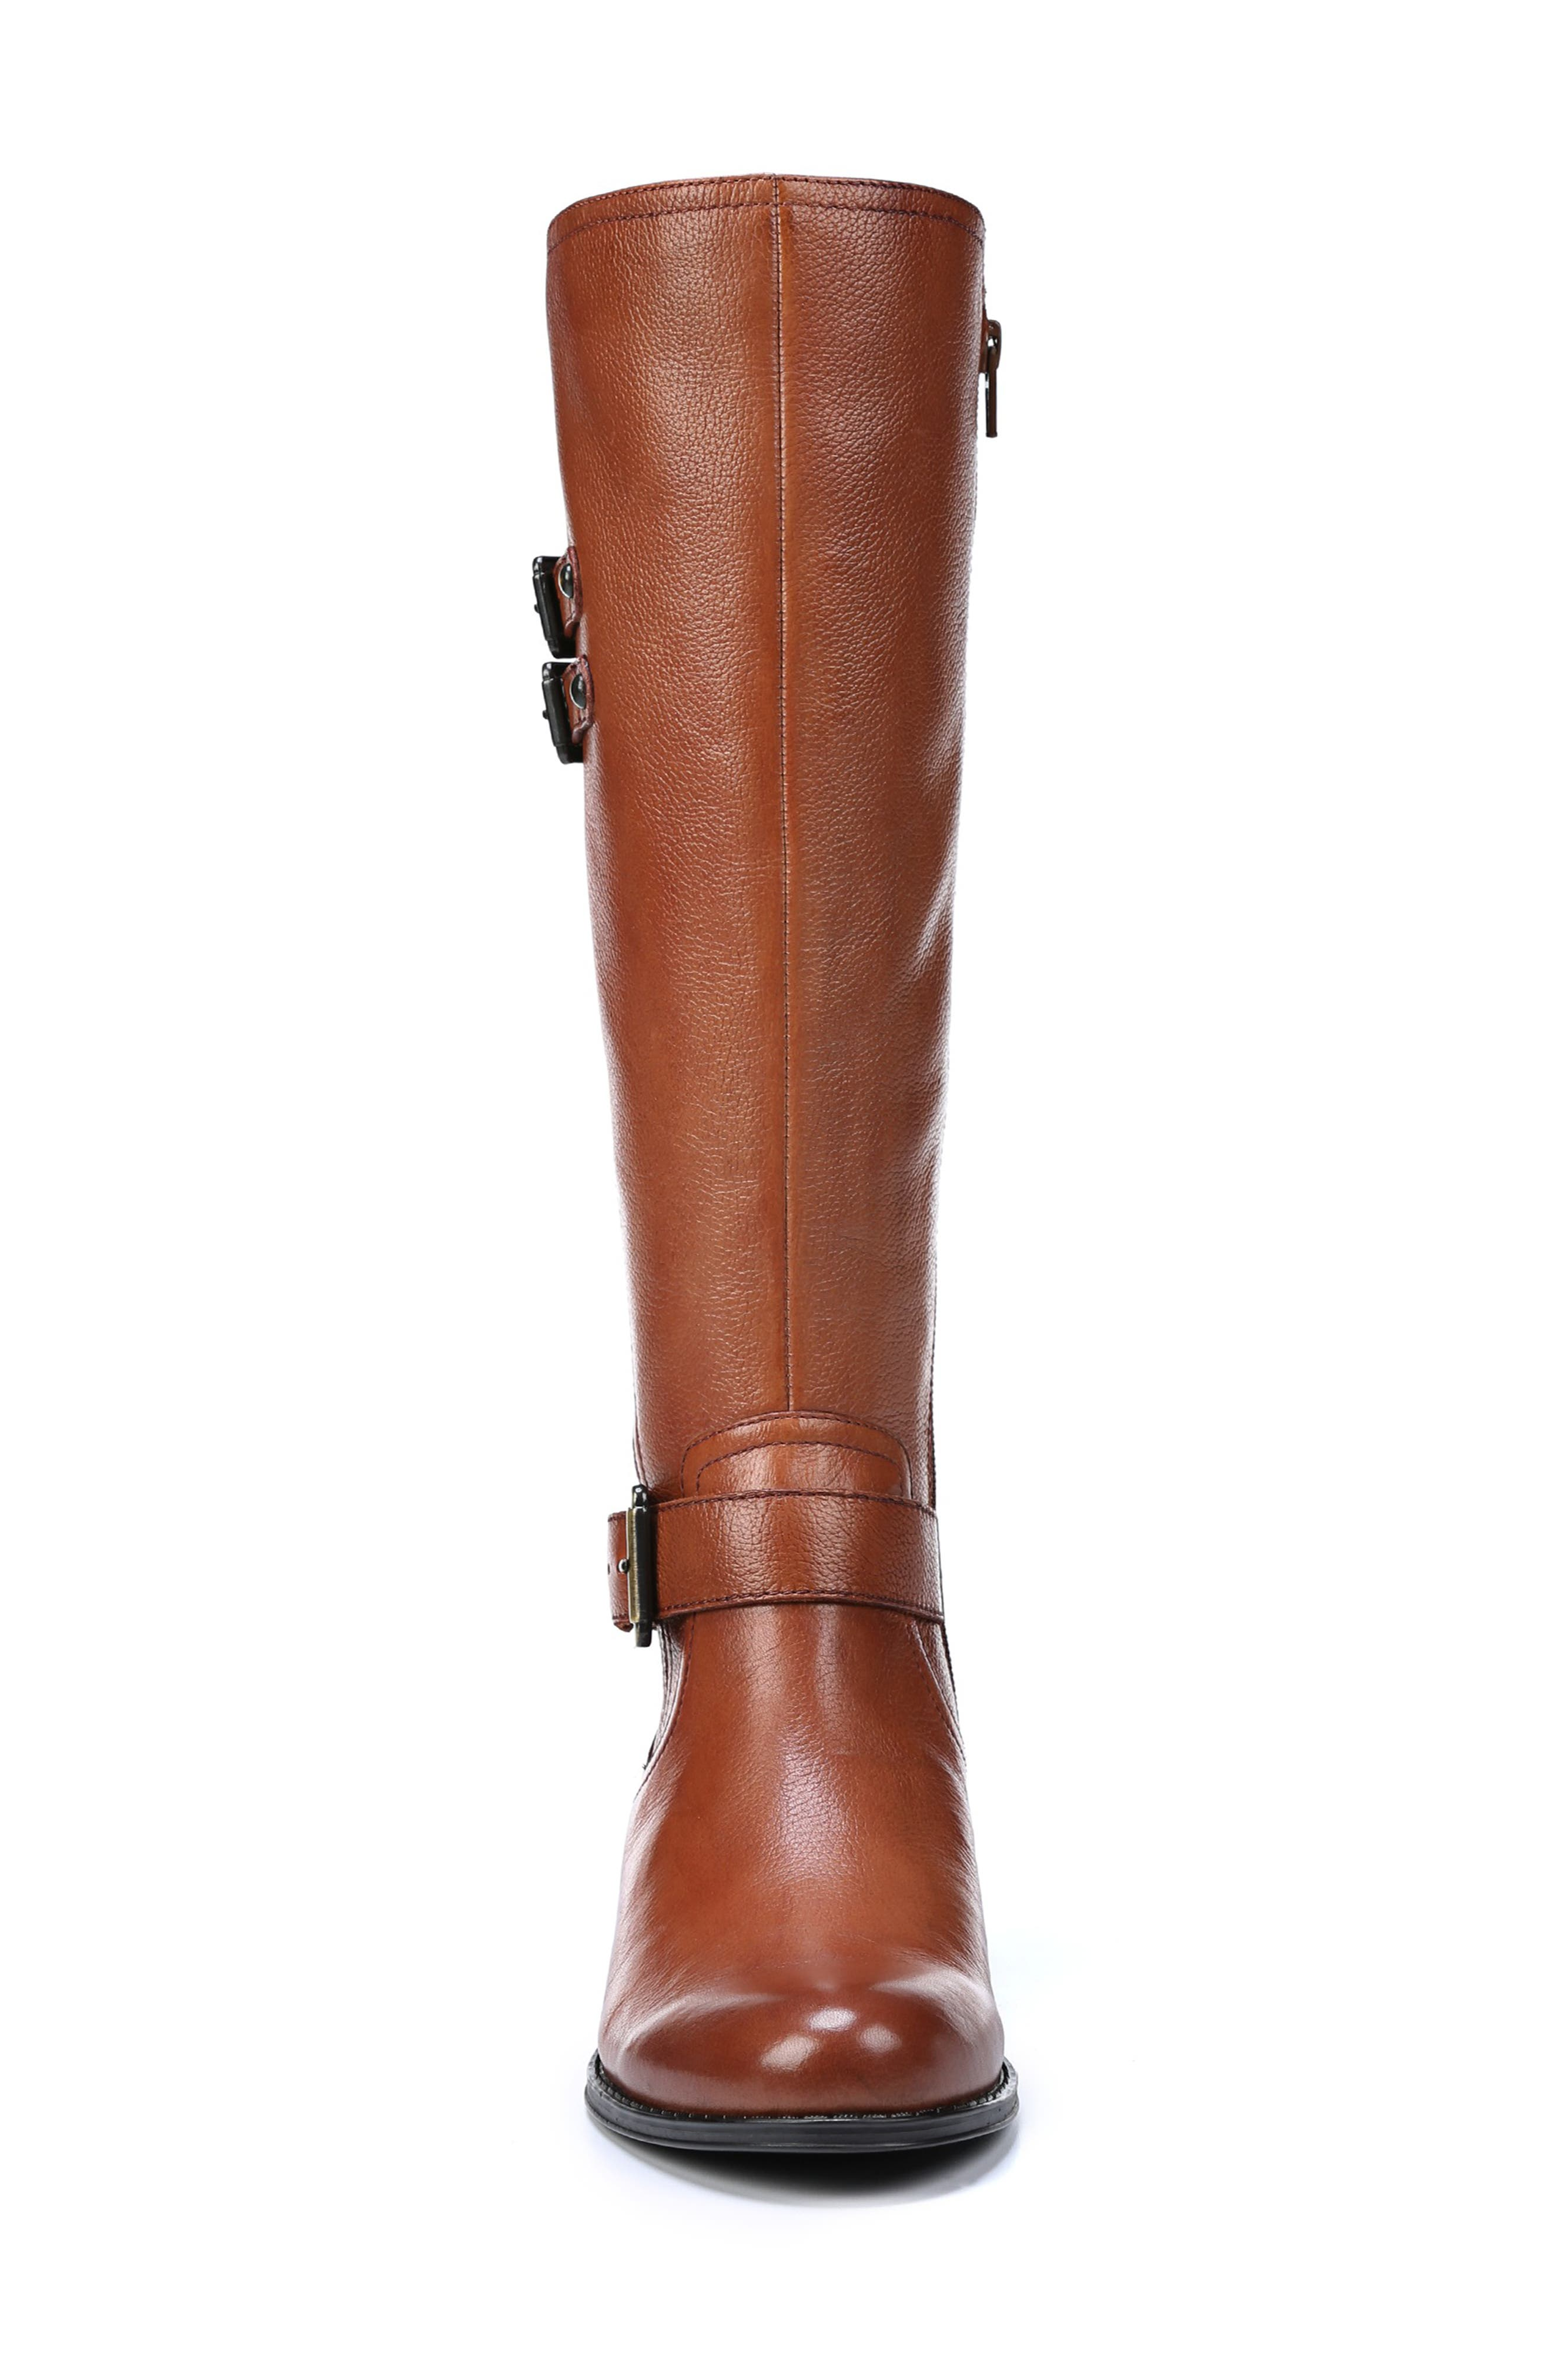 NATURALIZER, Jessie Knee High Riding Boot, Alternate thumbnail 4, color, BANANA BREAD LEATHER